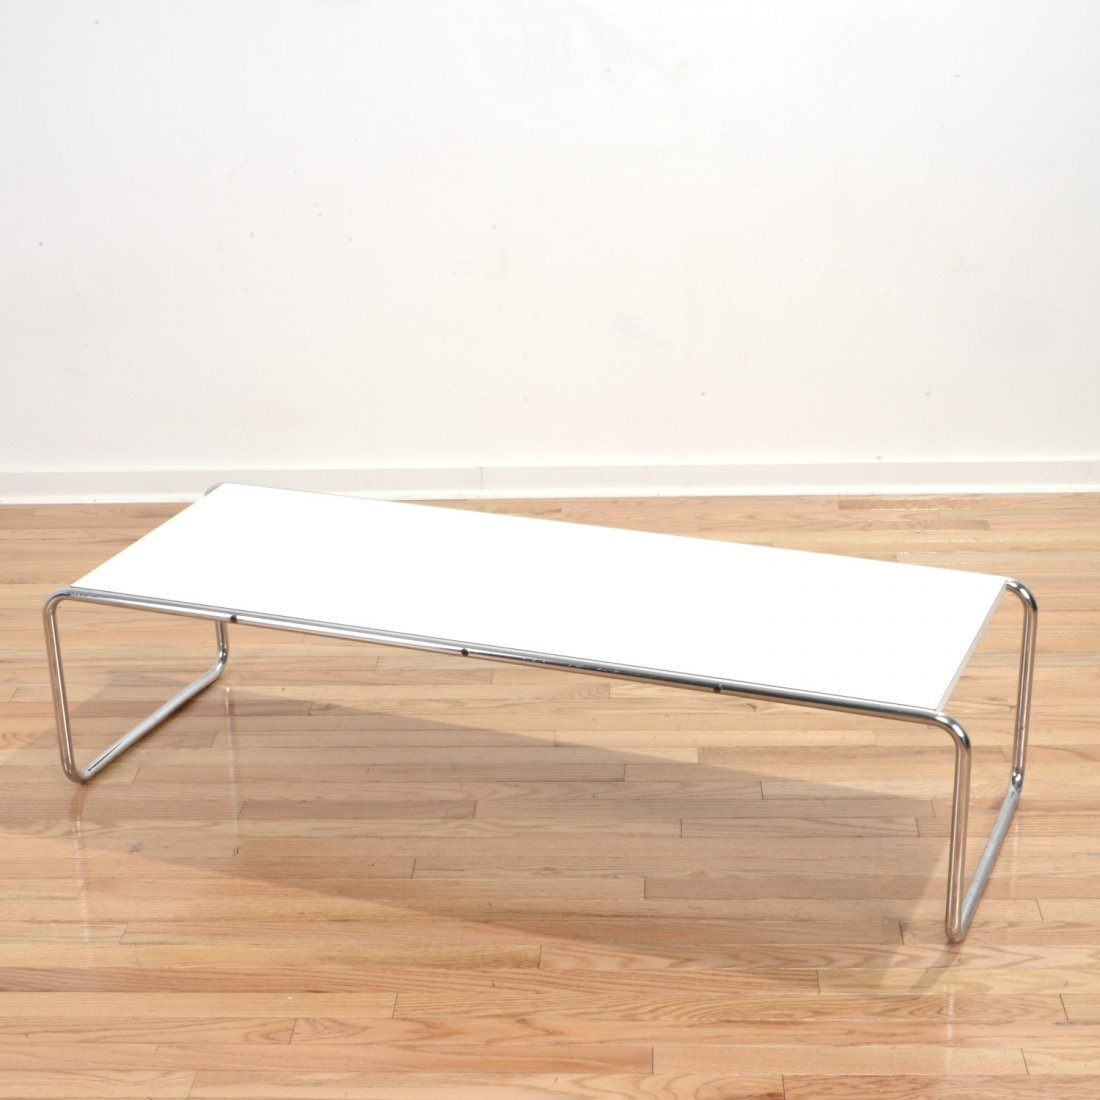 Breuer for gavina laccio coffee table marcel breuer for gavina laccio coffee table geotapseo Images